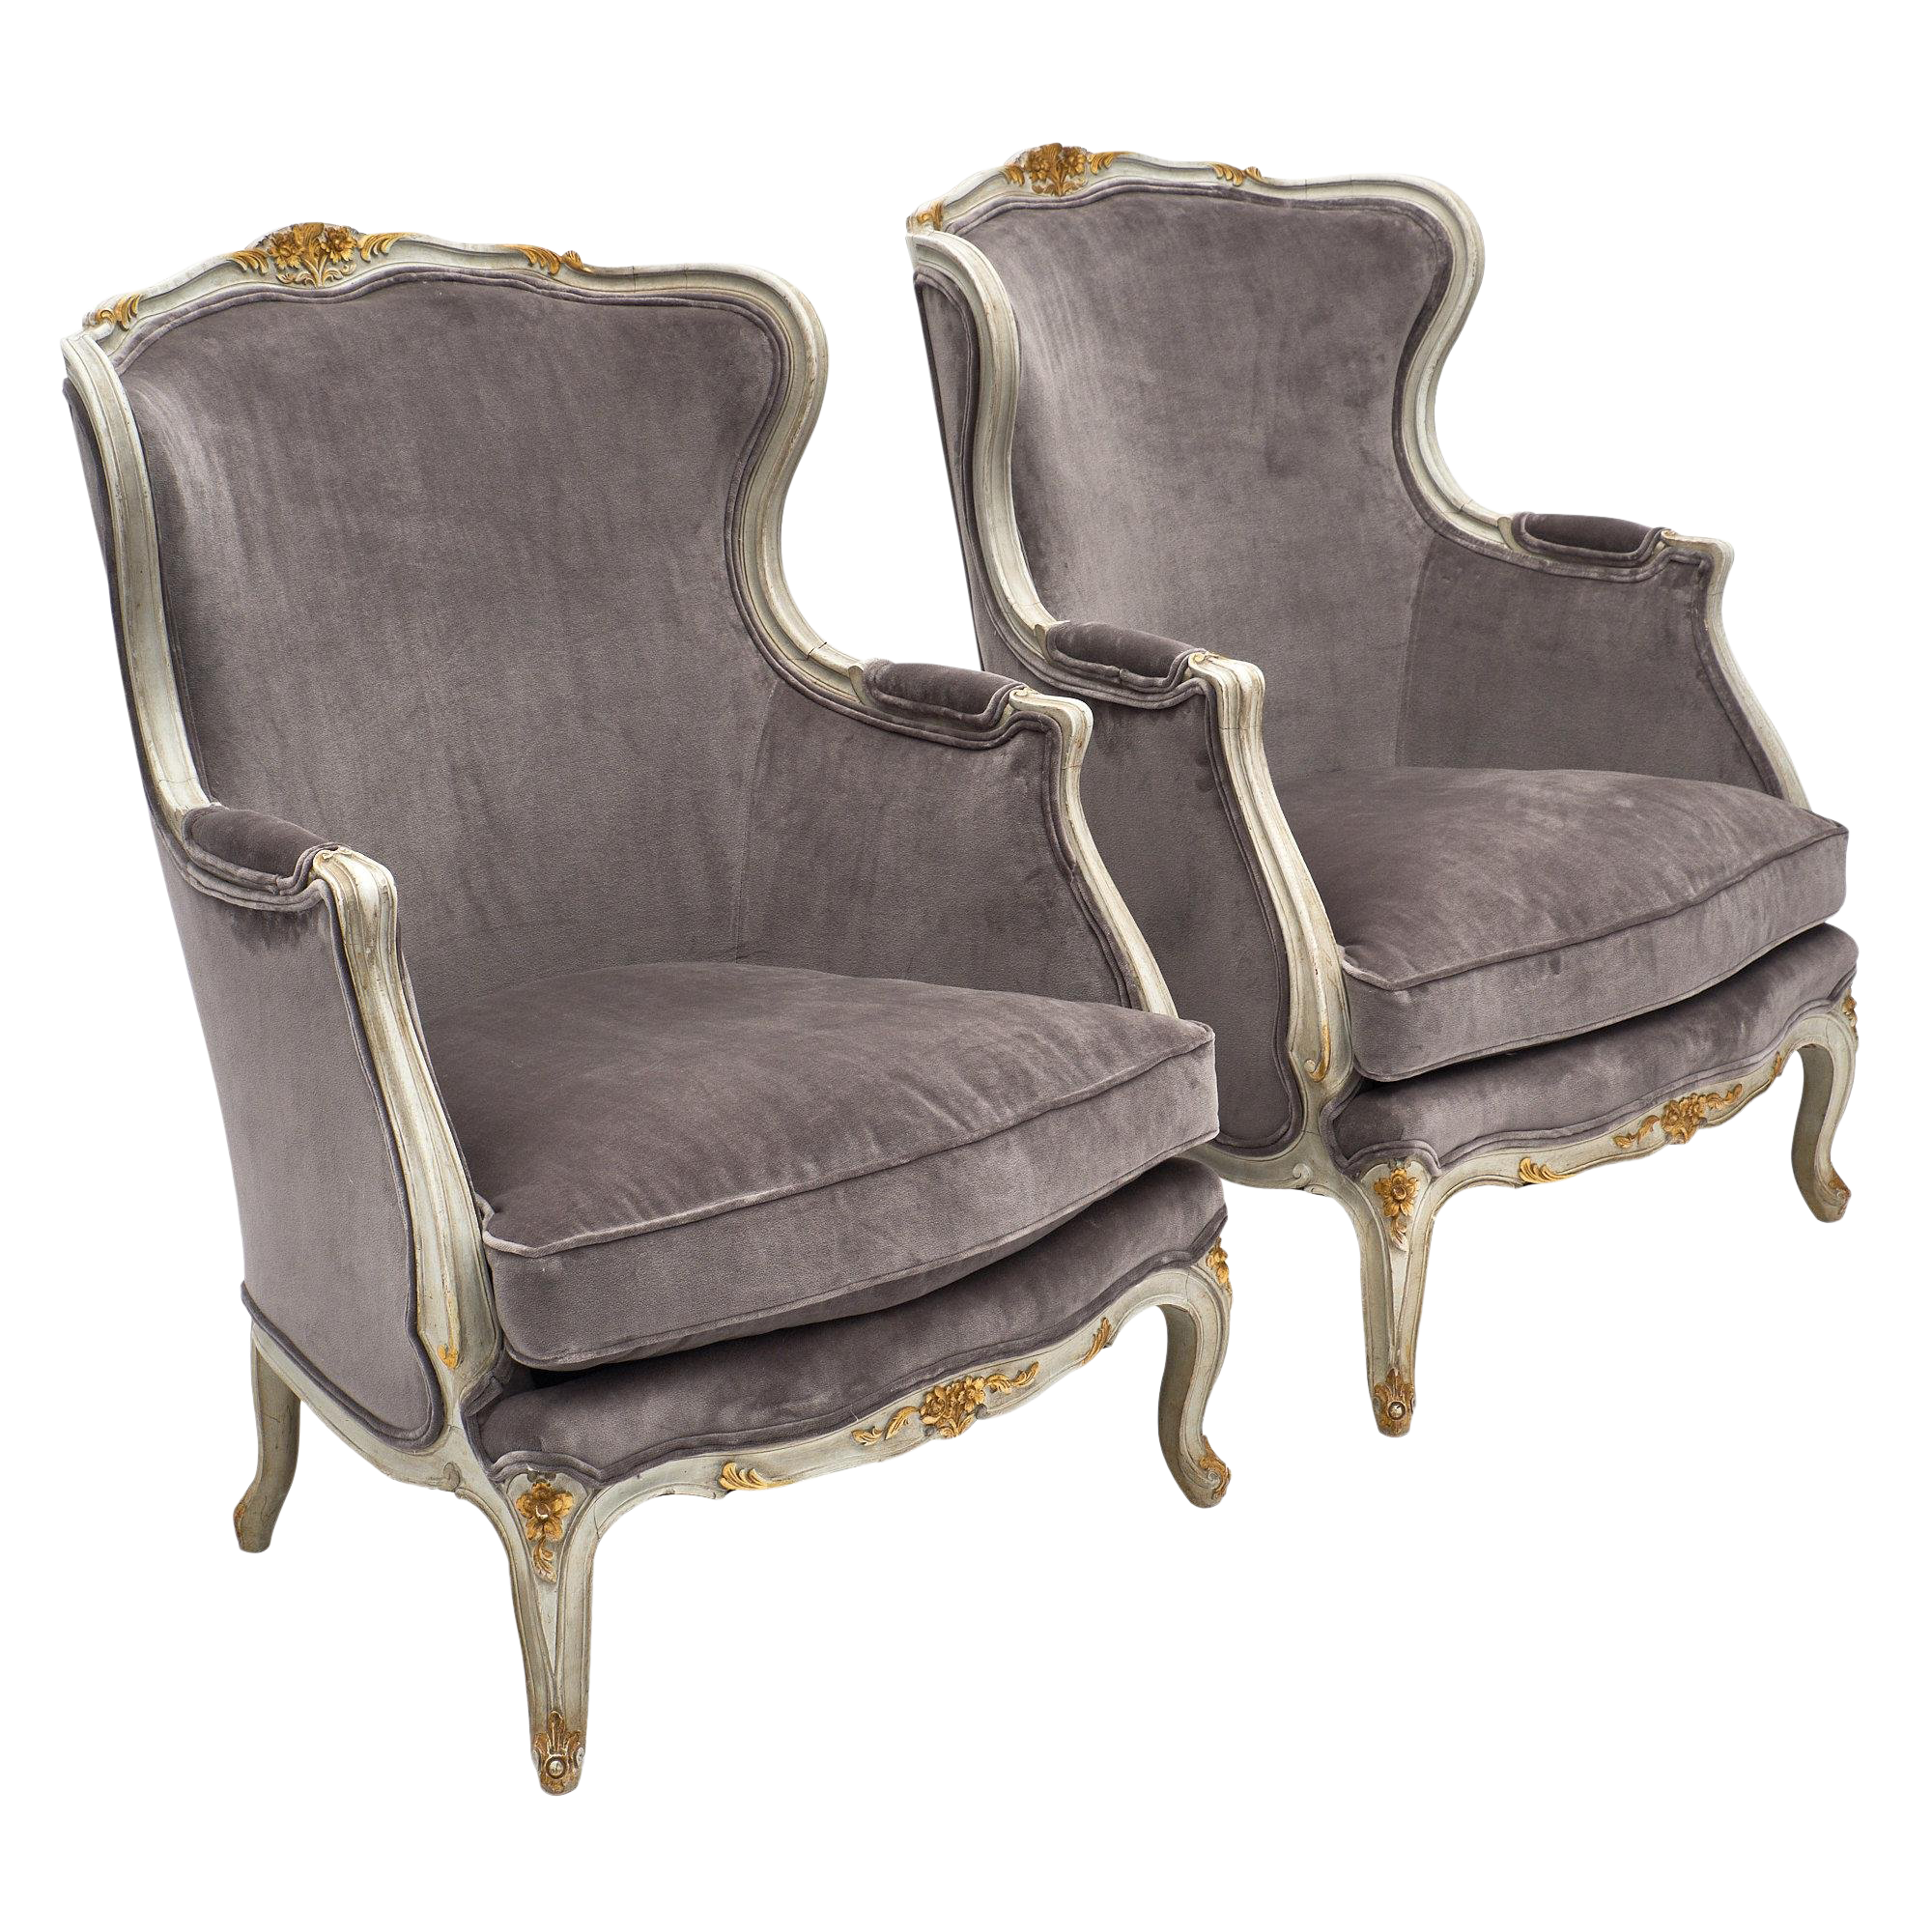 louis xv chair swing canopy replacement incredible style french bergere chairs a pair decaso